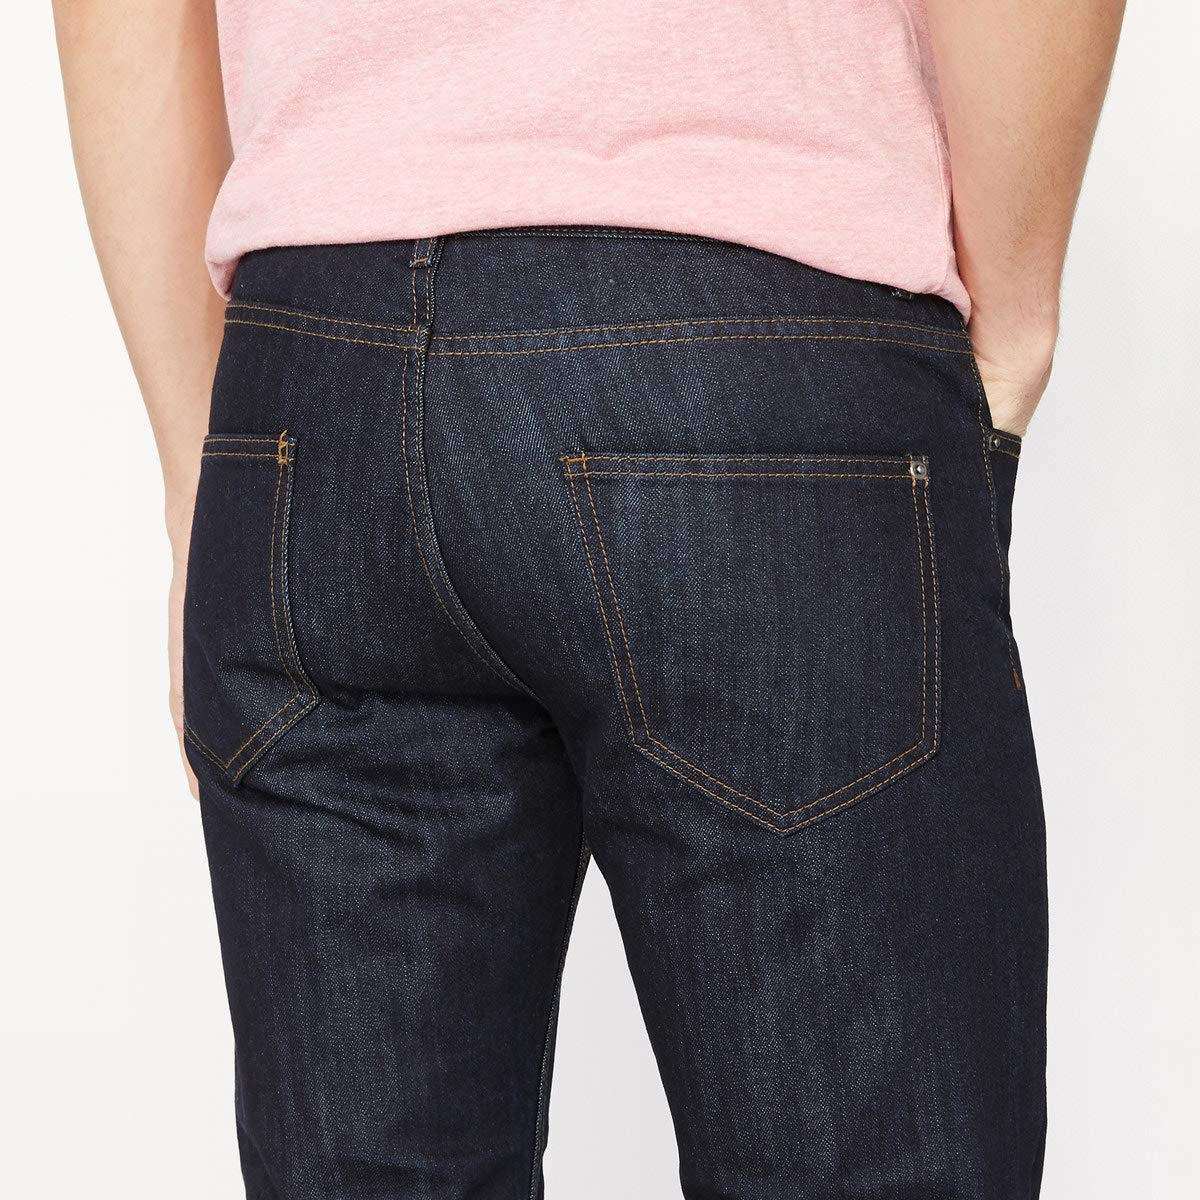 La Redoute Uniross Mens Straight Leg Jeans Length 32//34